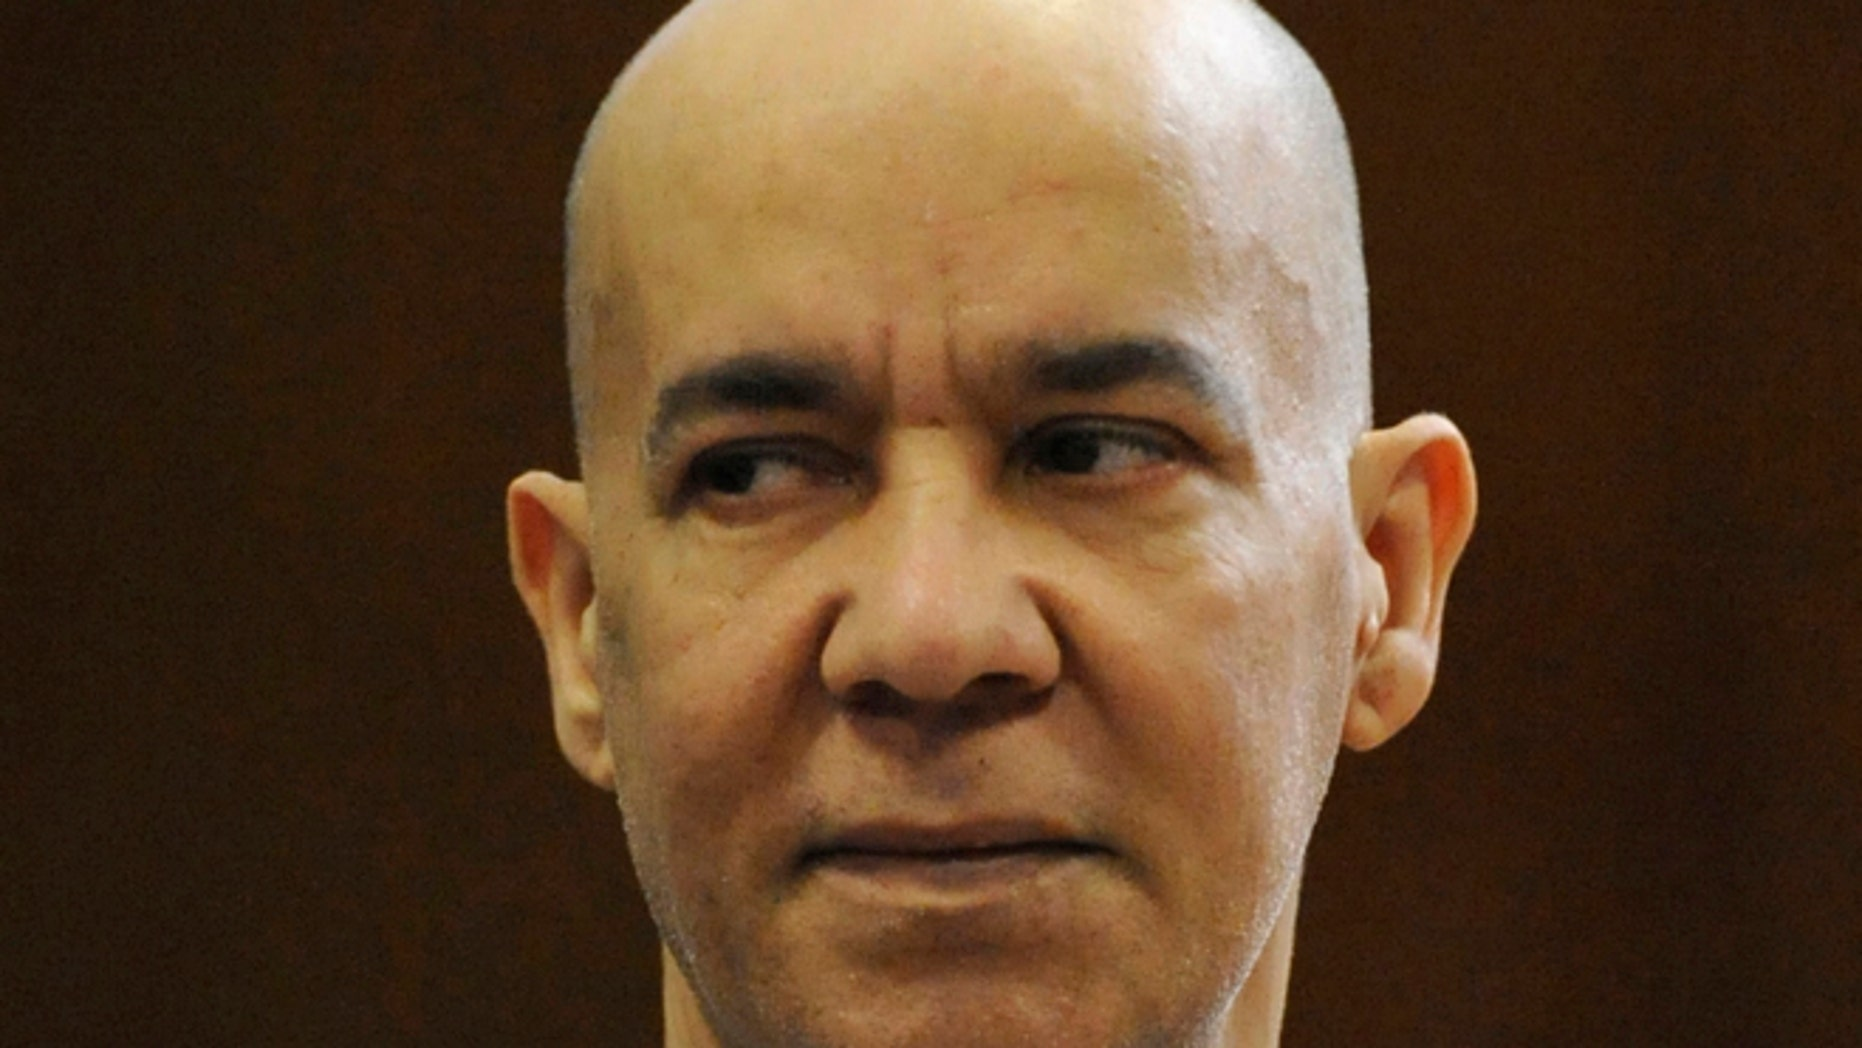 FILE- In this Nov. 15, 2012 file photo, Pedro Hernandez appears in Manhattan criminal court in New York. On Wednesday, April 29, 2015, the jury tasked with deciding whether Hernandez killed 6-year-old Etan Patz in 1979 will enter its tenth day of deliberations. (AP Photo/Louis Lanzano, Pool, File)